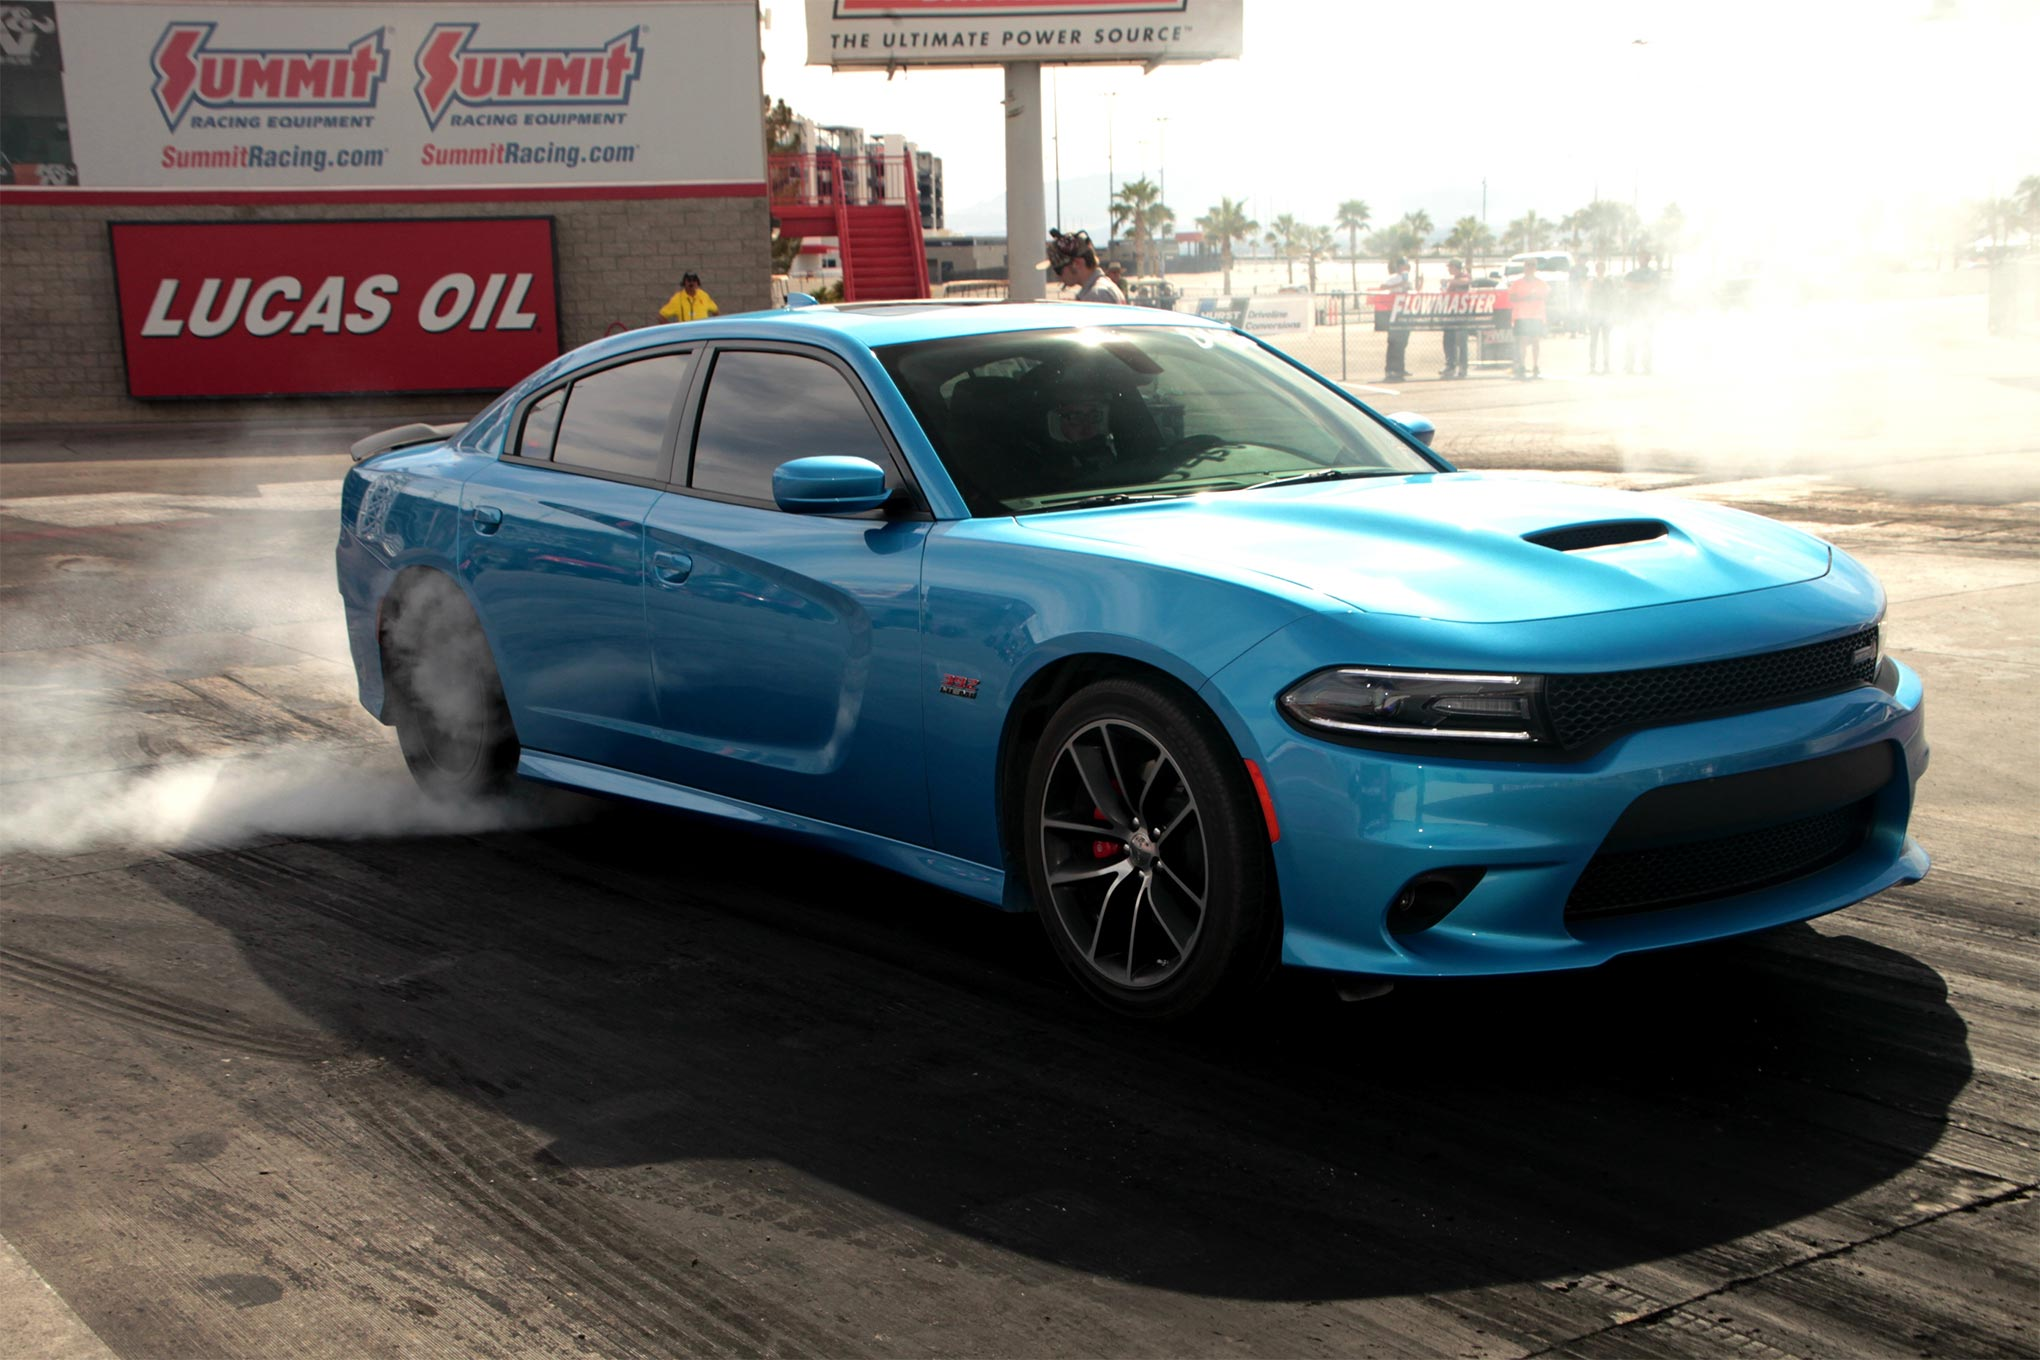 With nearly 500hp provided by the factory before the nitrous even thinks of coming on, burnouts in a Scat Pack Charger are as easy as dipping your toe into that well of modern muscle under the hood. Heating up those drag radials is one of the most fun—and necessary—parts of drag racing!